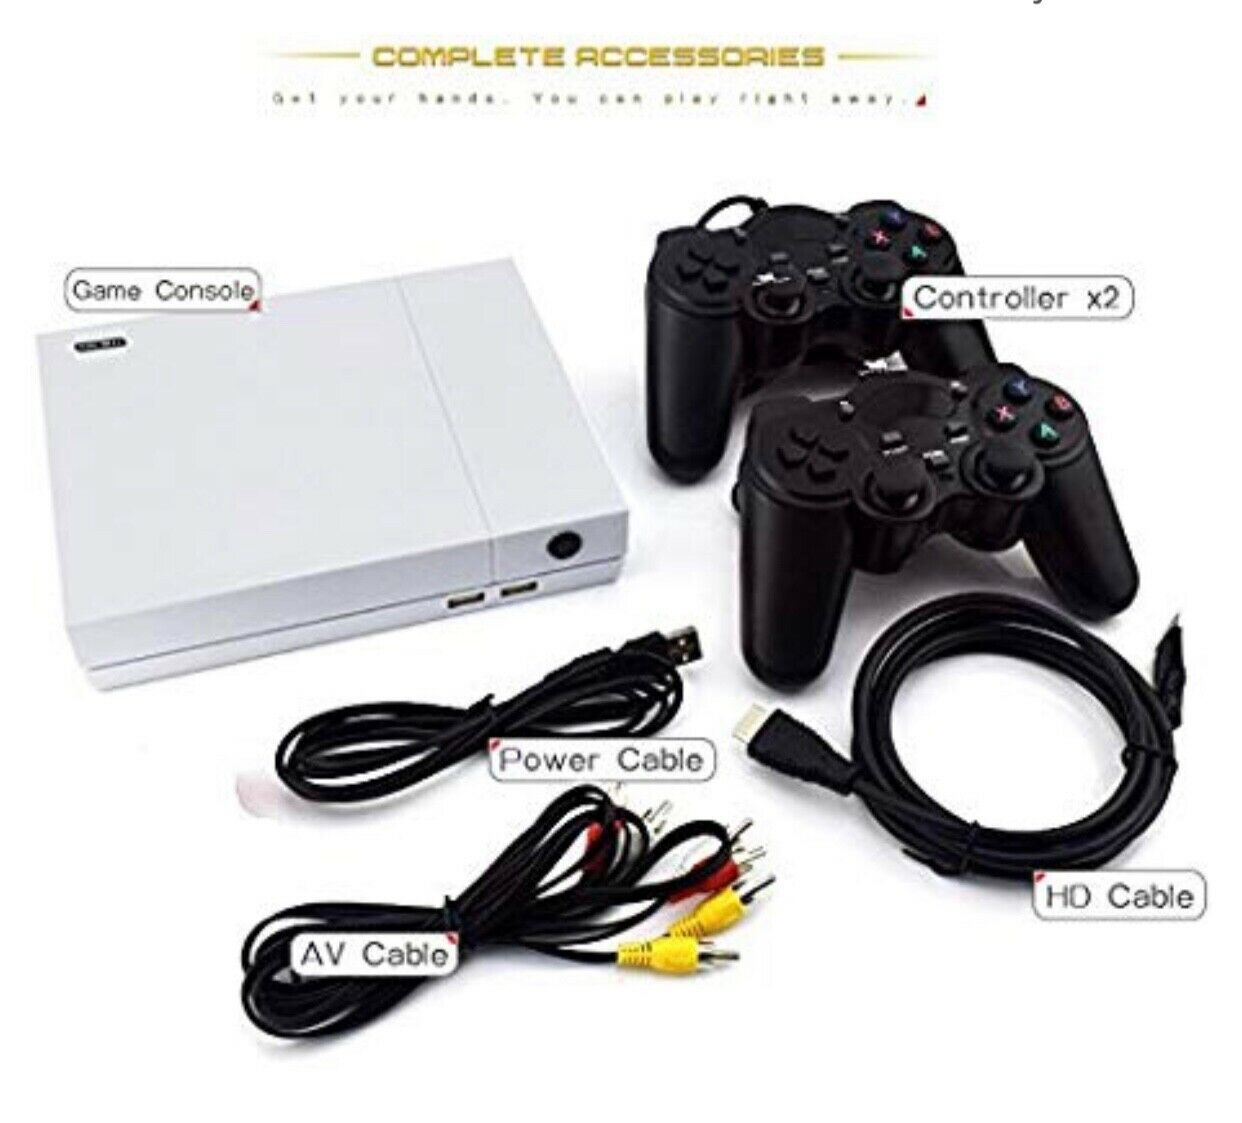 Anbernic Retro Game Console , 4K HDMI TV Output Output Output Video Game Console Built-in 843 461f91